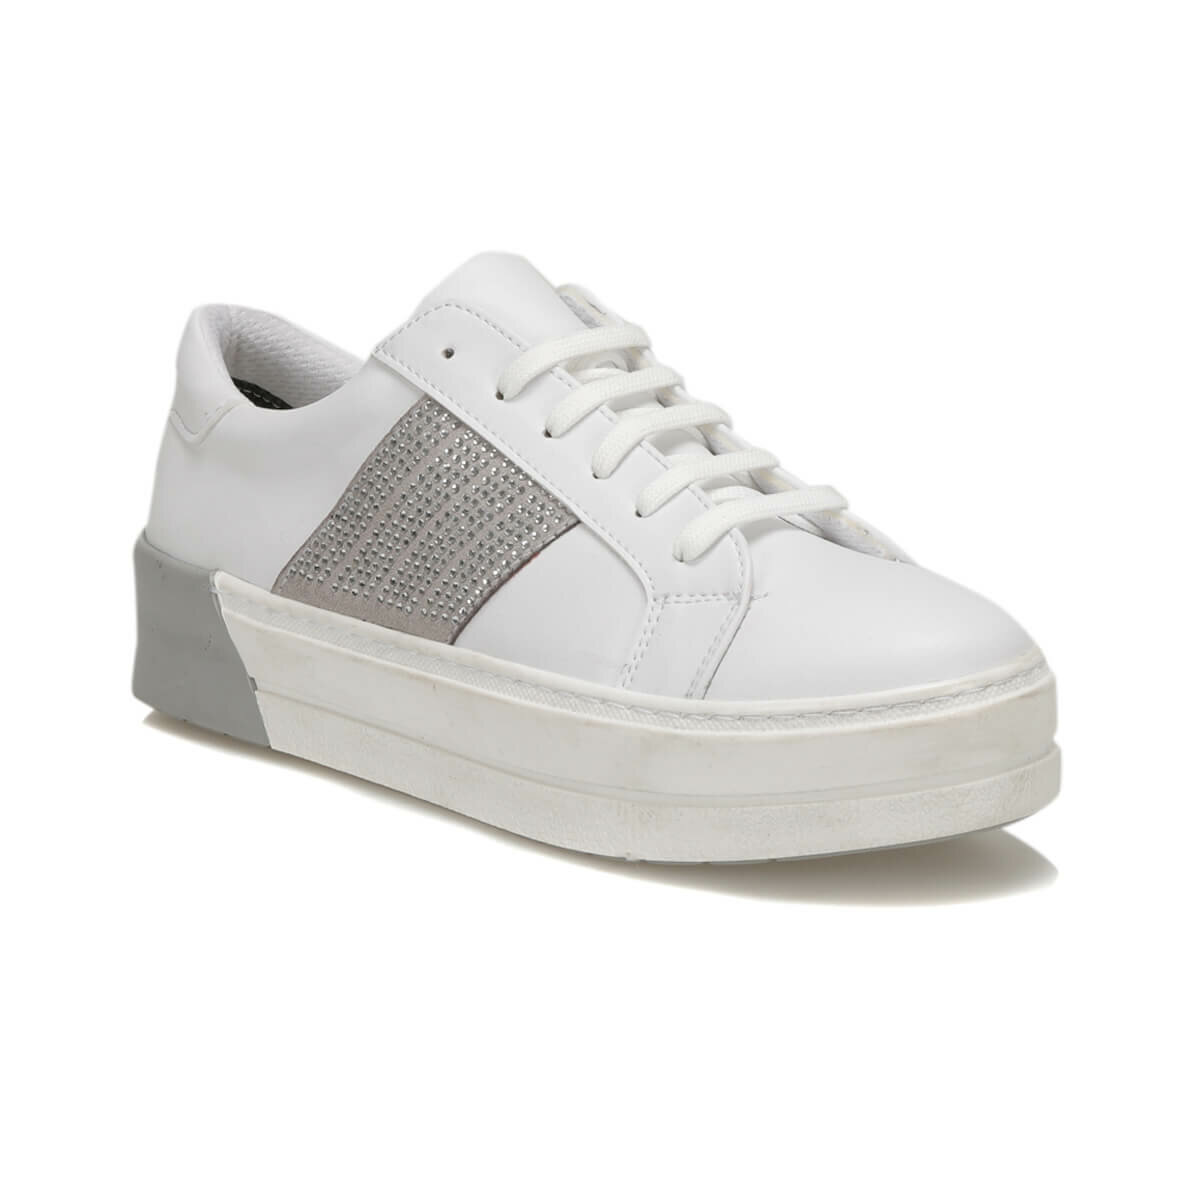 FLO 19S-091 White Women 'S Sneaker Shoes BUTIGO